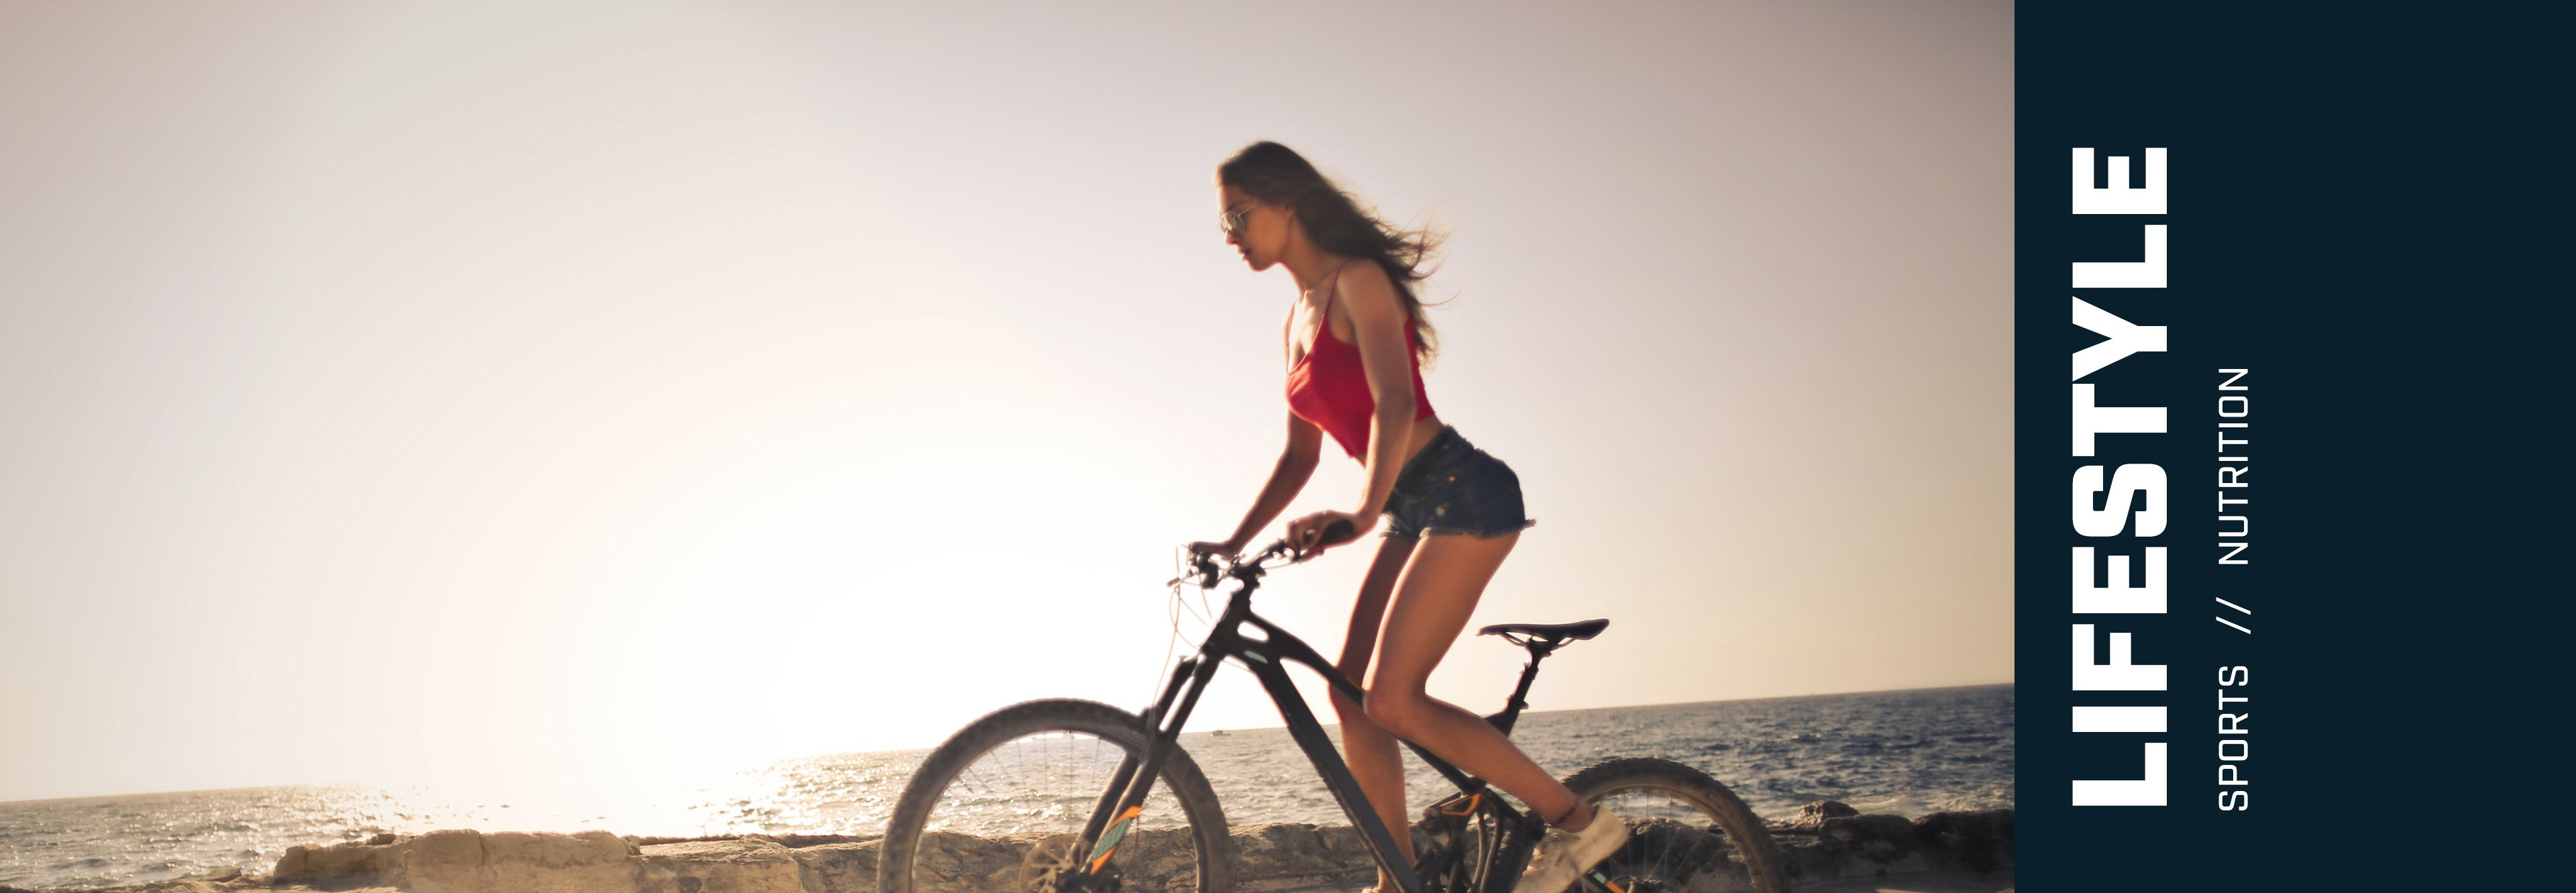 Woman cycling on the beach. Sports, lifestyle, nutrition.